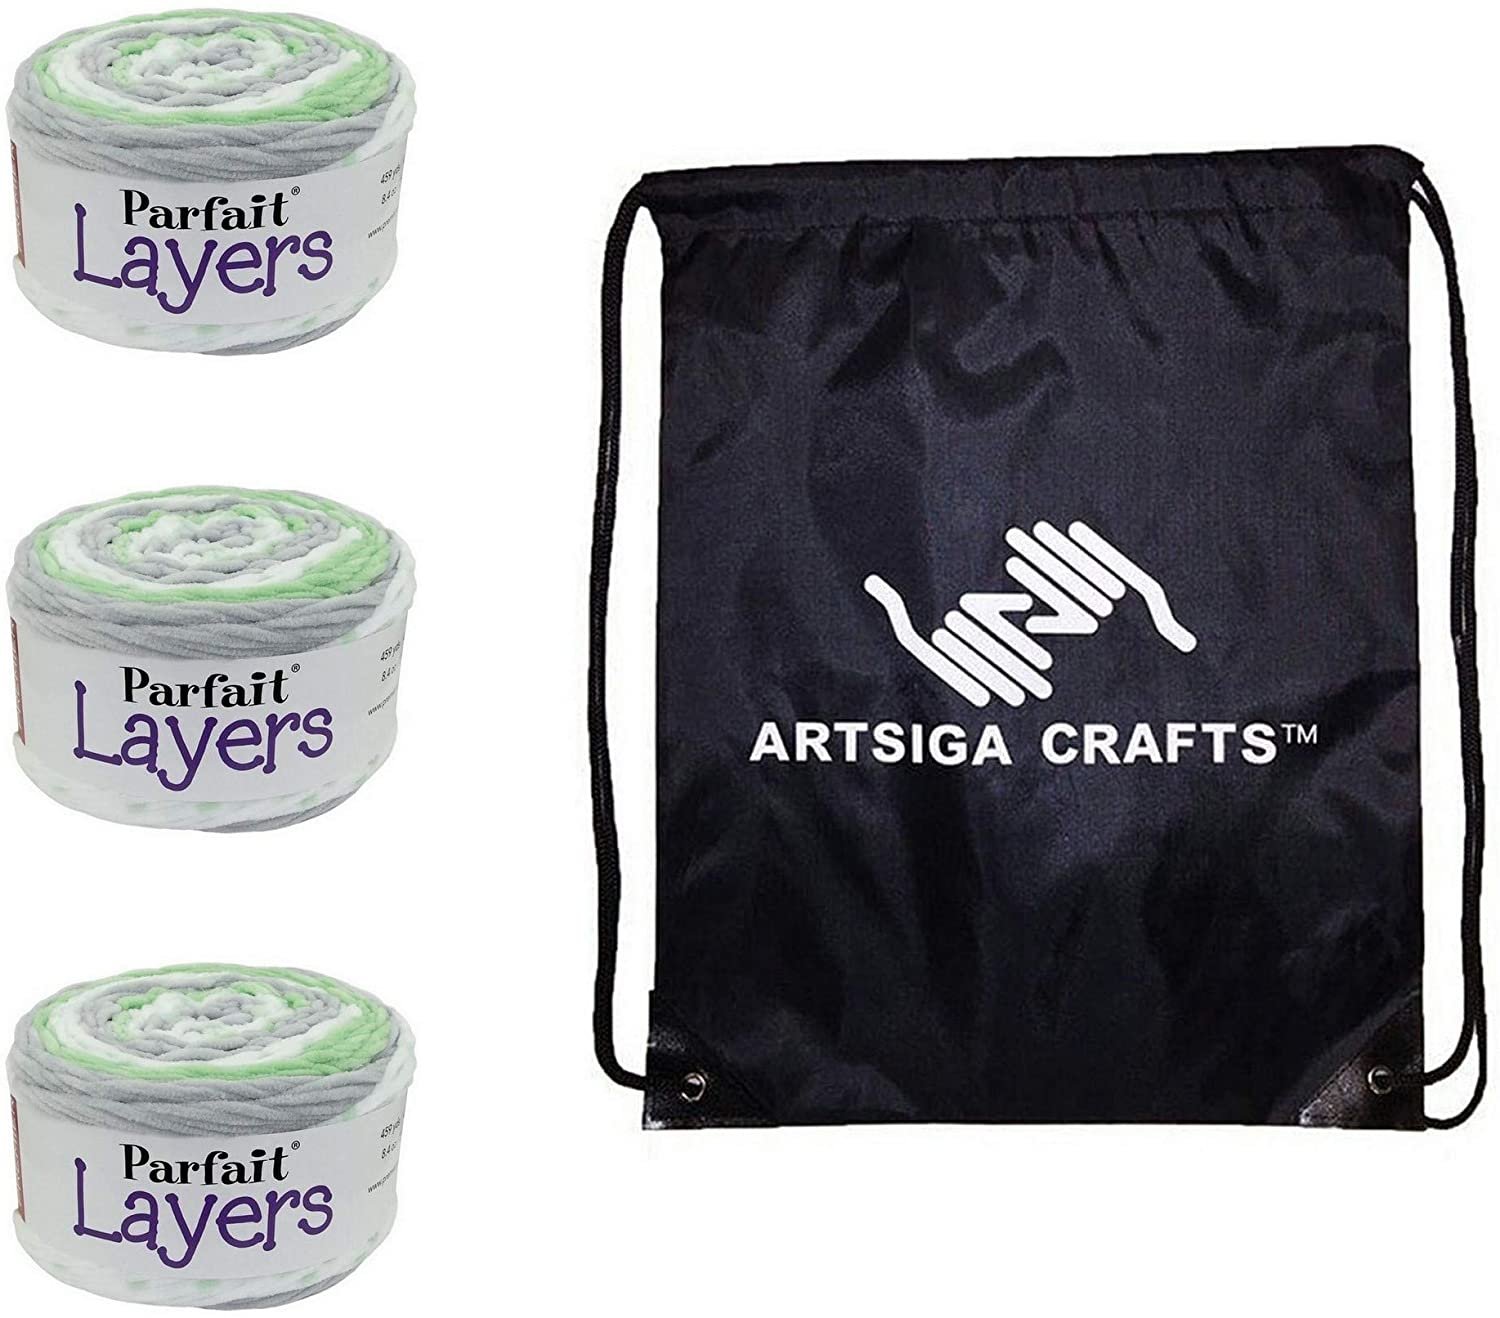 Premier Knitting Yarn Parfait Layers Pistachio 3-Skein Factory Pack (Same Dye Lot) 1070-14 Bundle with 1 Artsiga Crafts Project Bag